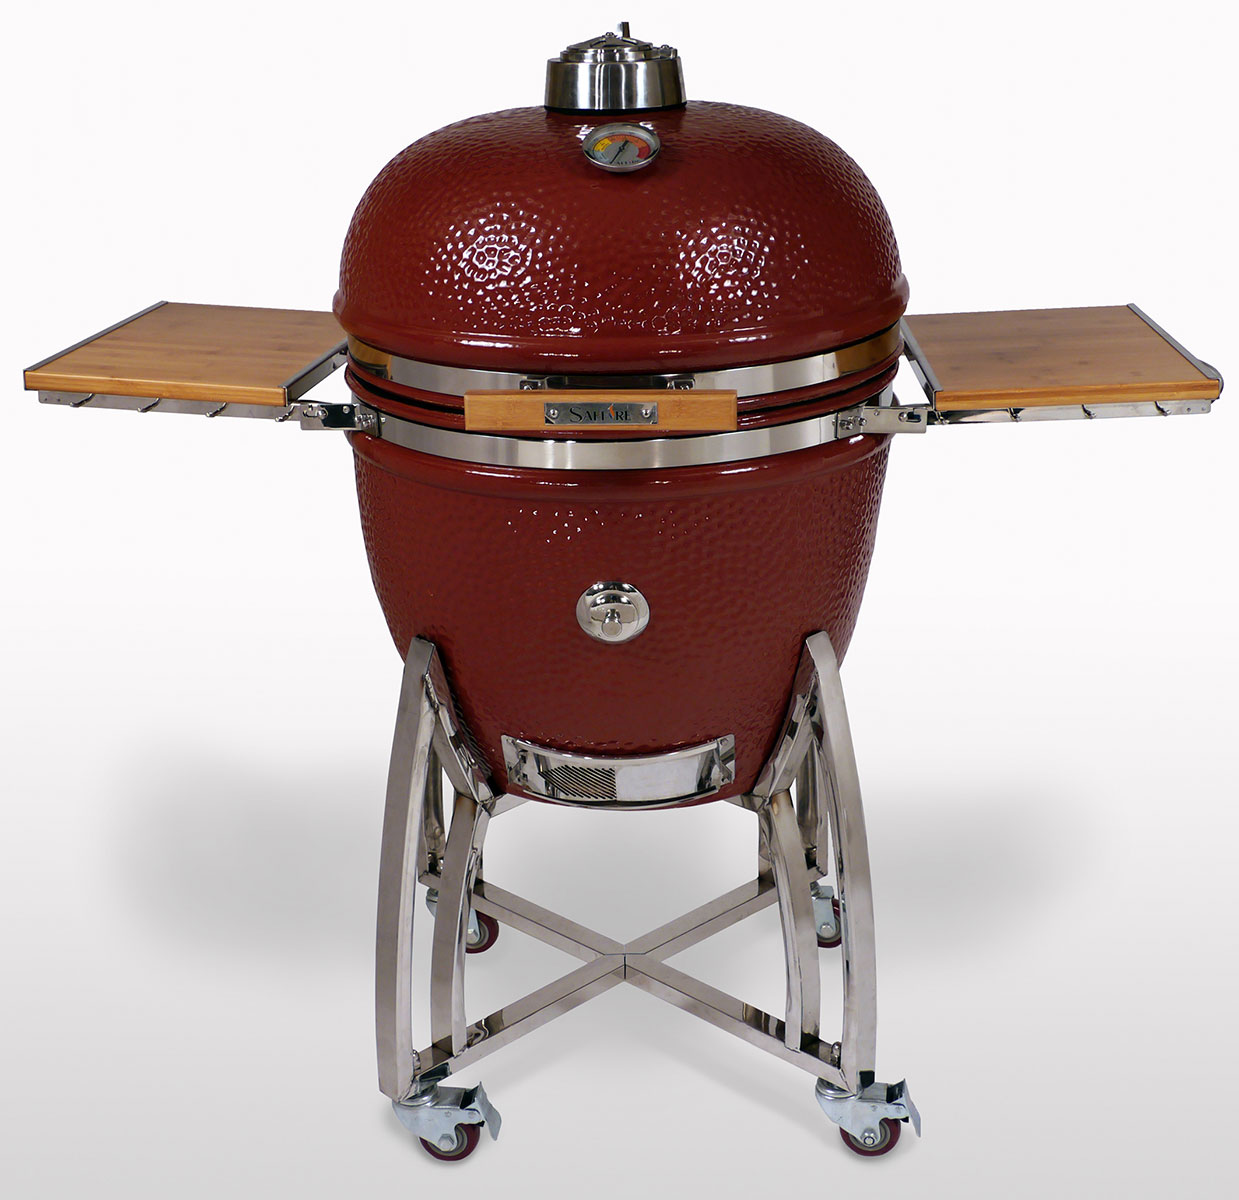 2014 Red XL Saffire Grill & Smoker